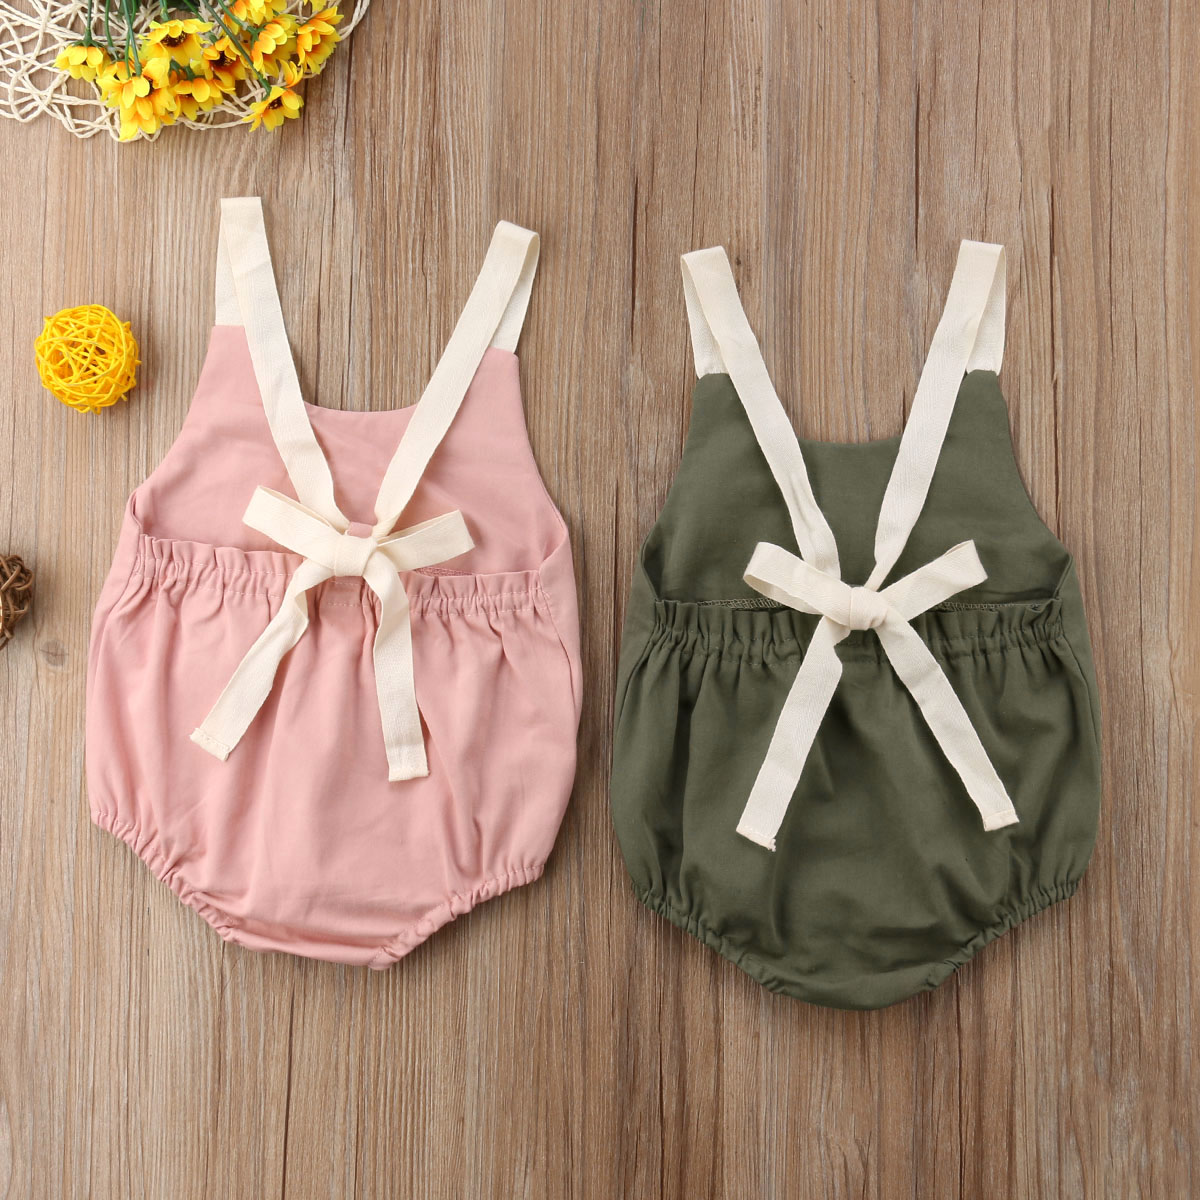 0 24M Newborn Kid Baby Girl Clothes Summer Bowknot Backless Romper Casual plain Outfits Infantil Clothing 0-24M Newborn Kid Baby Girl Clothes Summer Bowknot Backless Romper Casual plain Outfits Infantil Clothing  costume